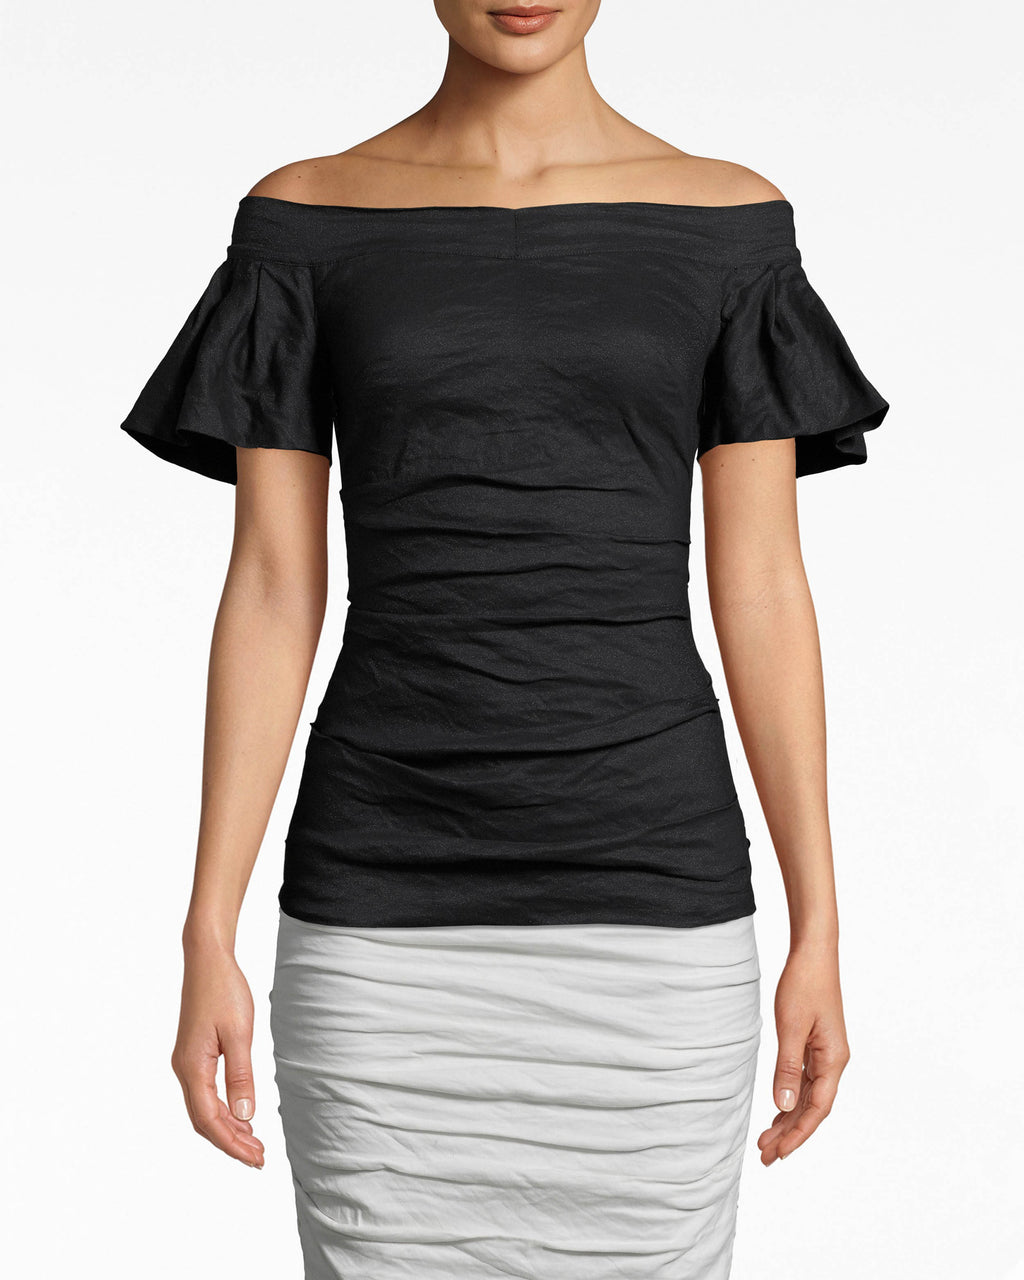 BF10399 - SOLID COTTON METAL OFF THE SHOULDER TOP - tops - shirts - DESIGNED IN OUR ICONIC COTTON METAL, THIS FITTED OFF THE SHOULDER TOP IS A CLOSET STAPLE THAT WILL BE ON REPEAT ALL SPRING LONG. FEATURING 3/4 FLARED SLEEVES AND A FLATTERING RUCHED BODY. FULLY LINE D AND EXPOSED BACK ZIPPER FOR CLOSURE.